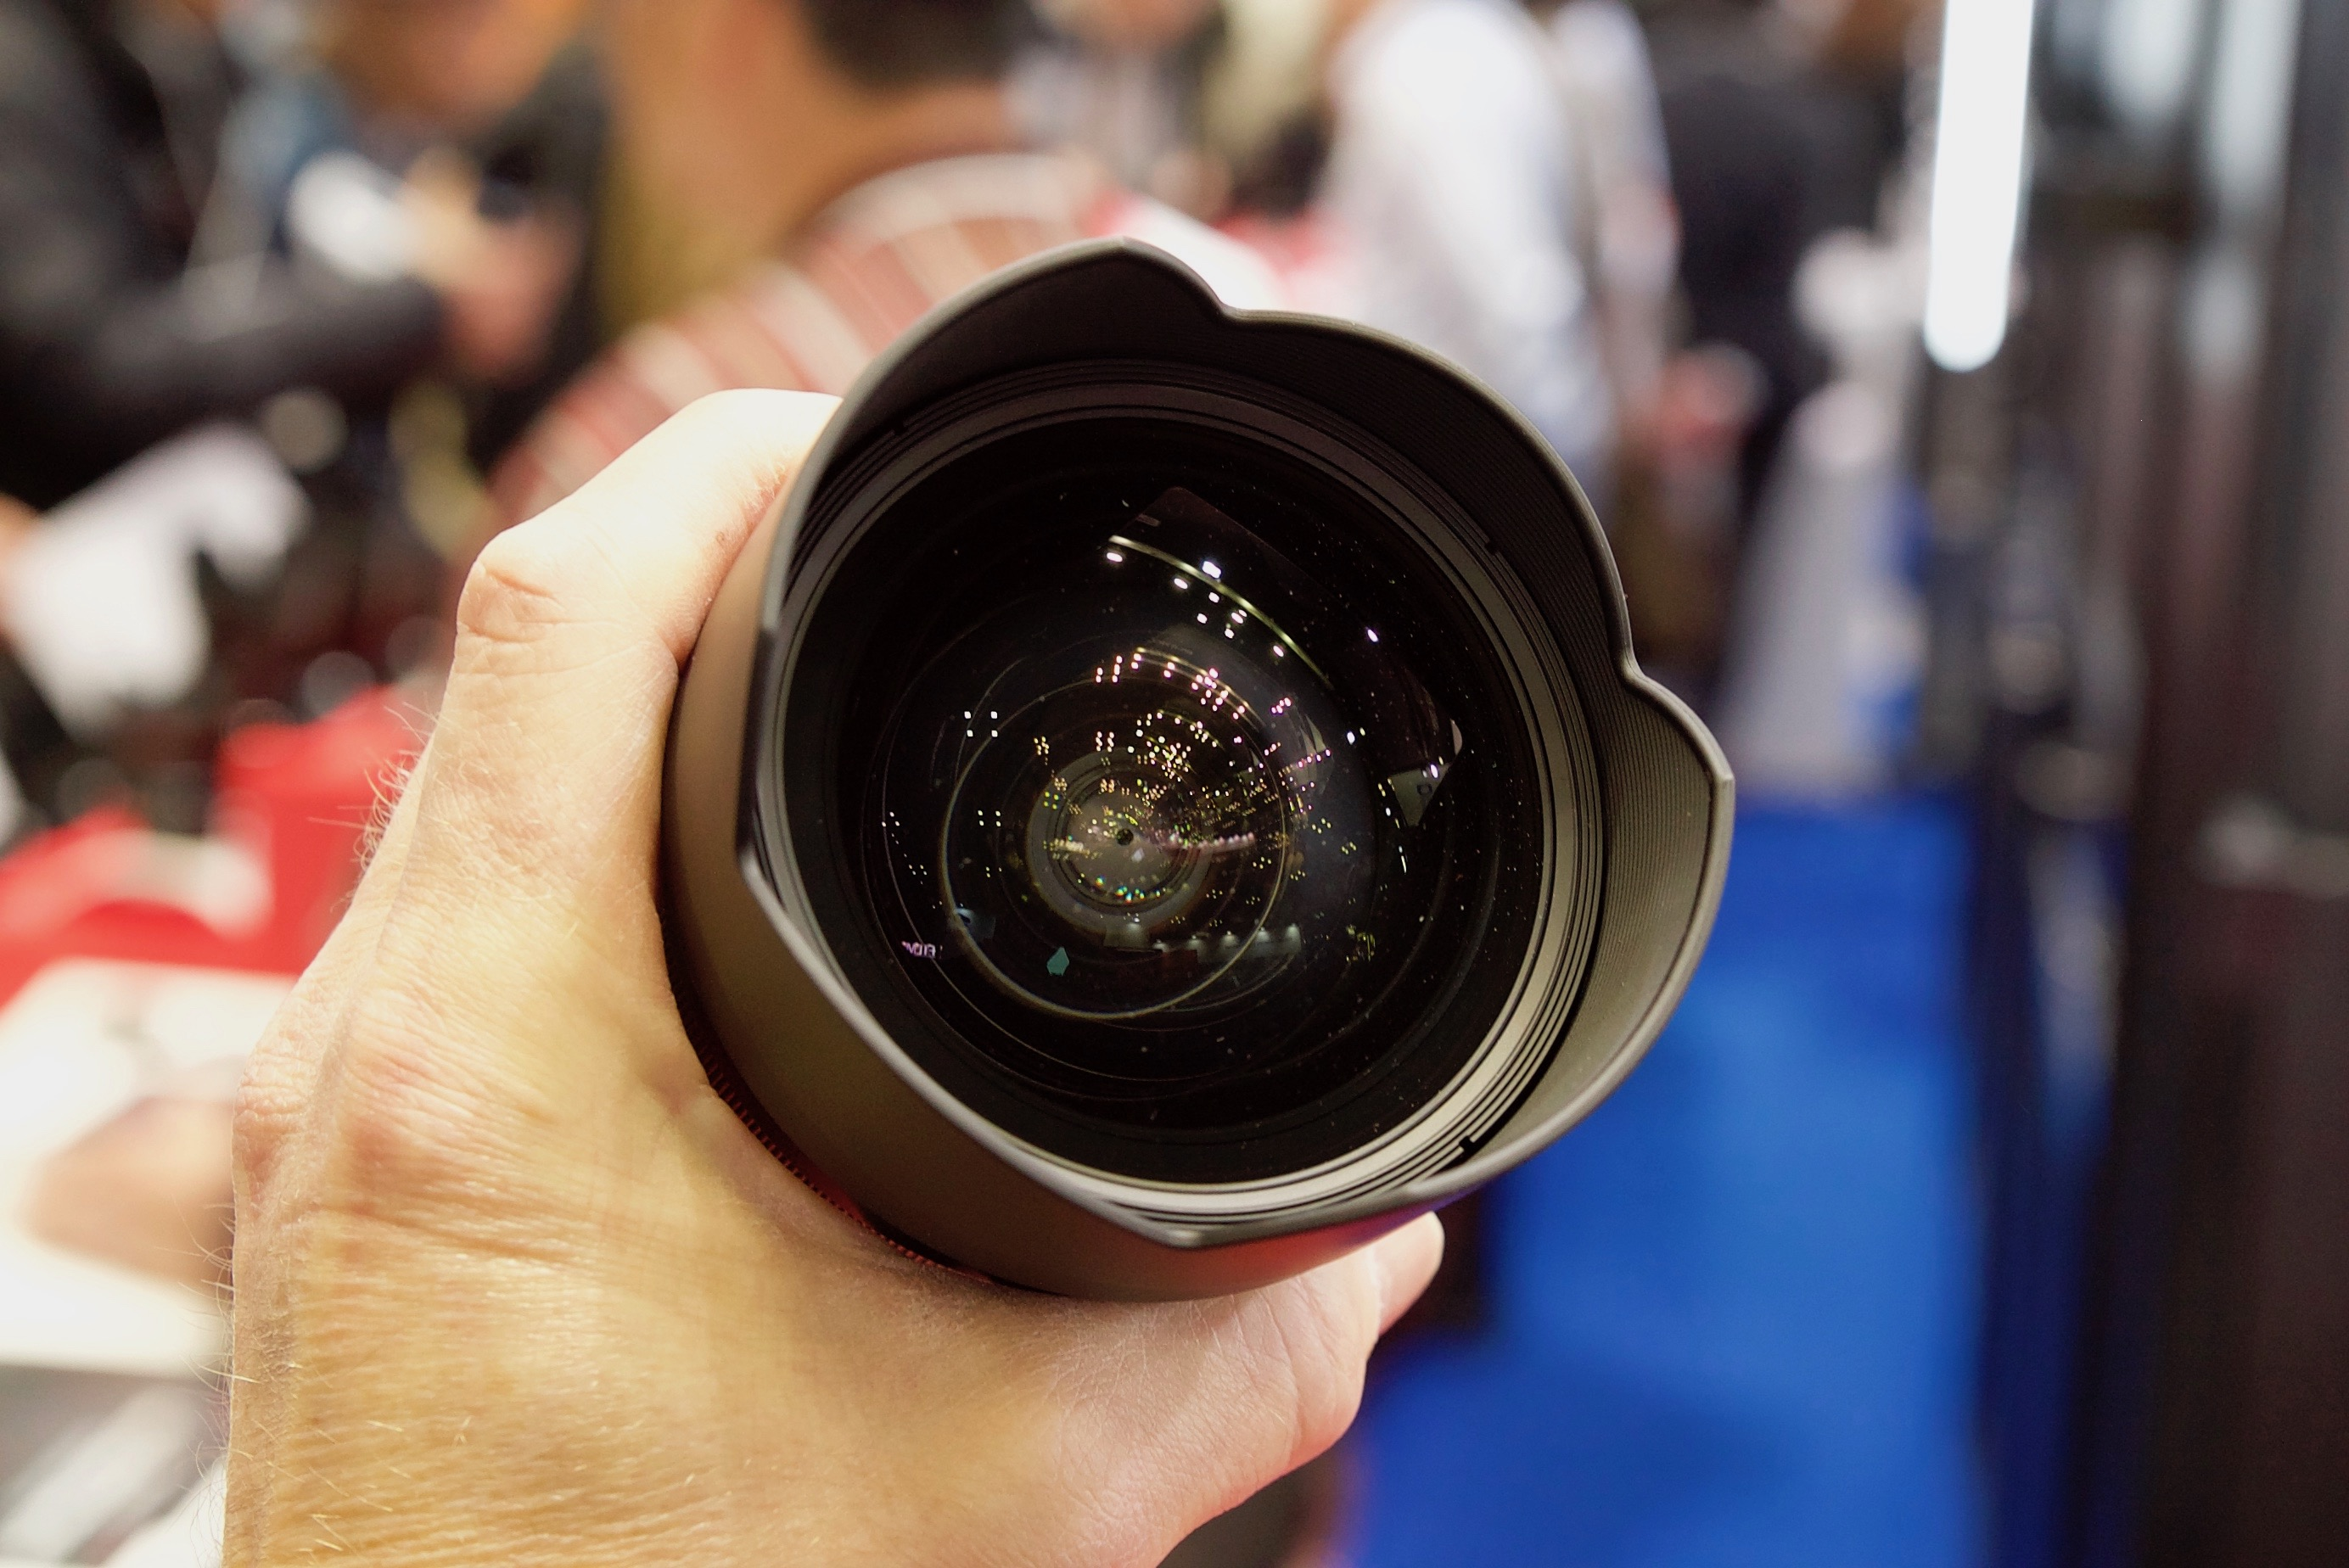 Tokina Opera 16-28mm F2.8 FF hands-on at CP+ 2019